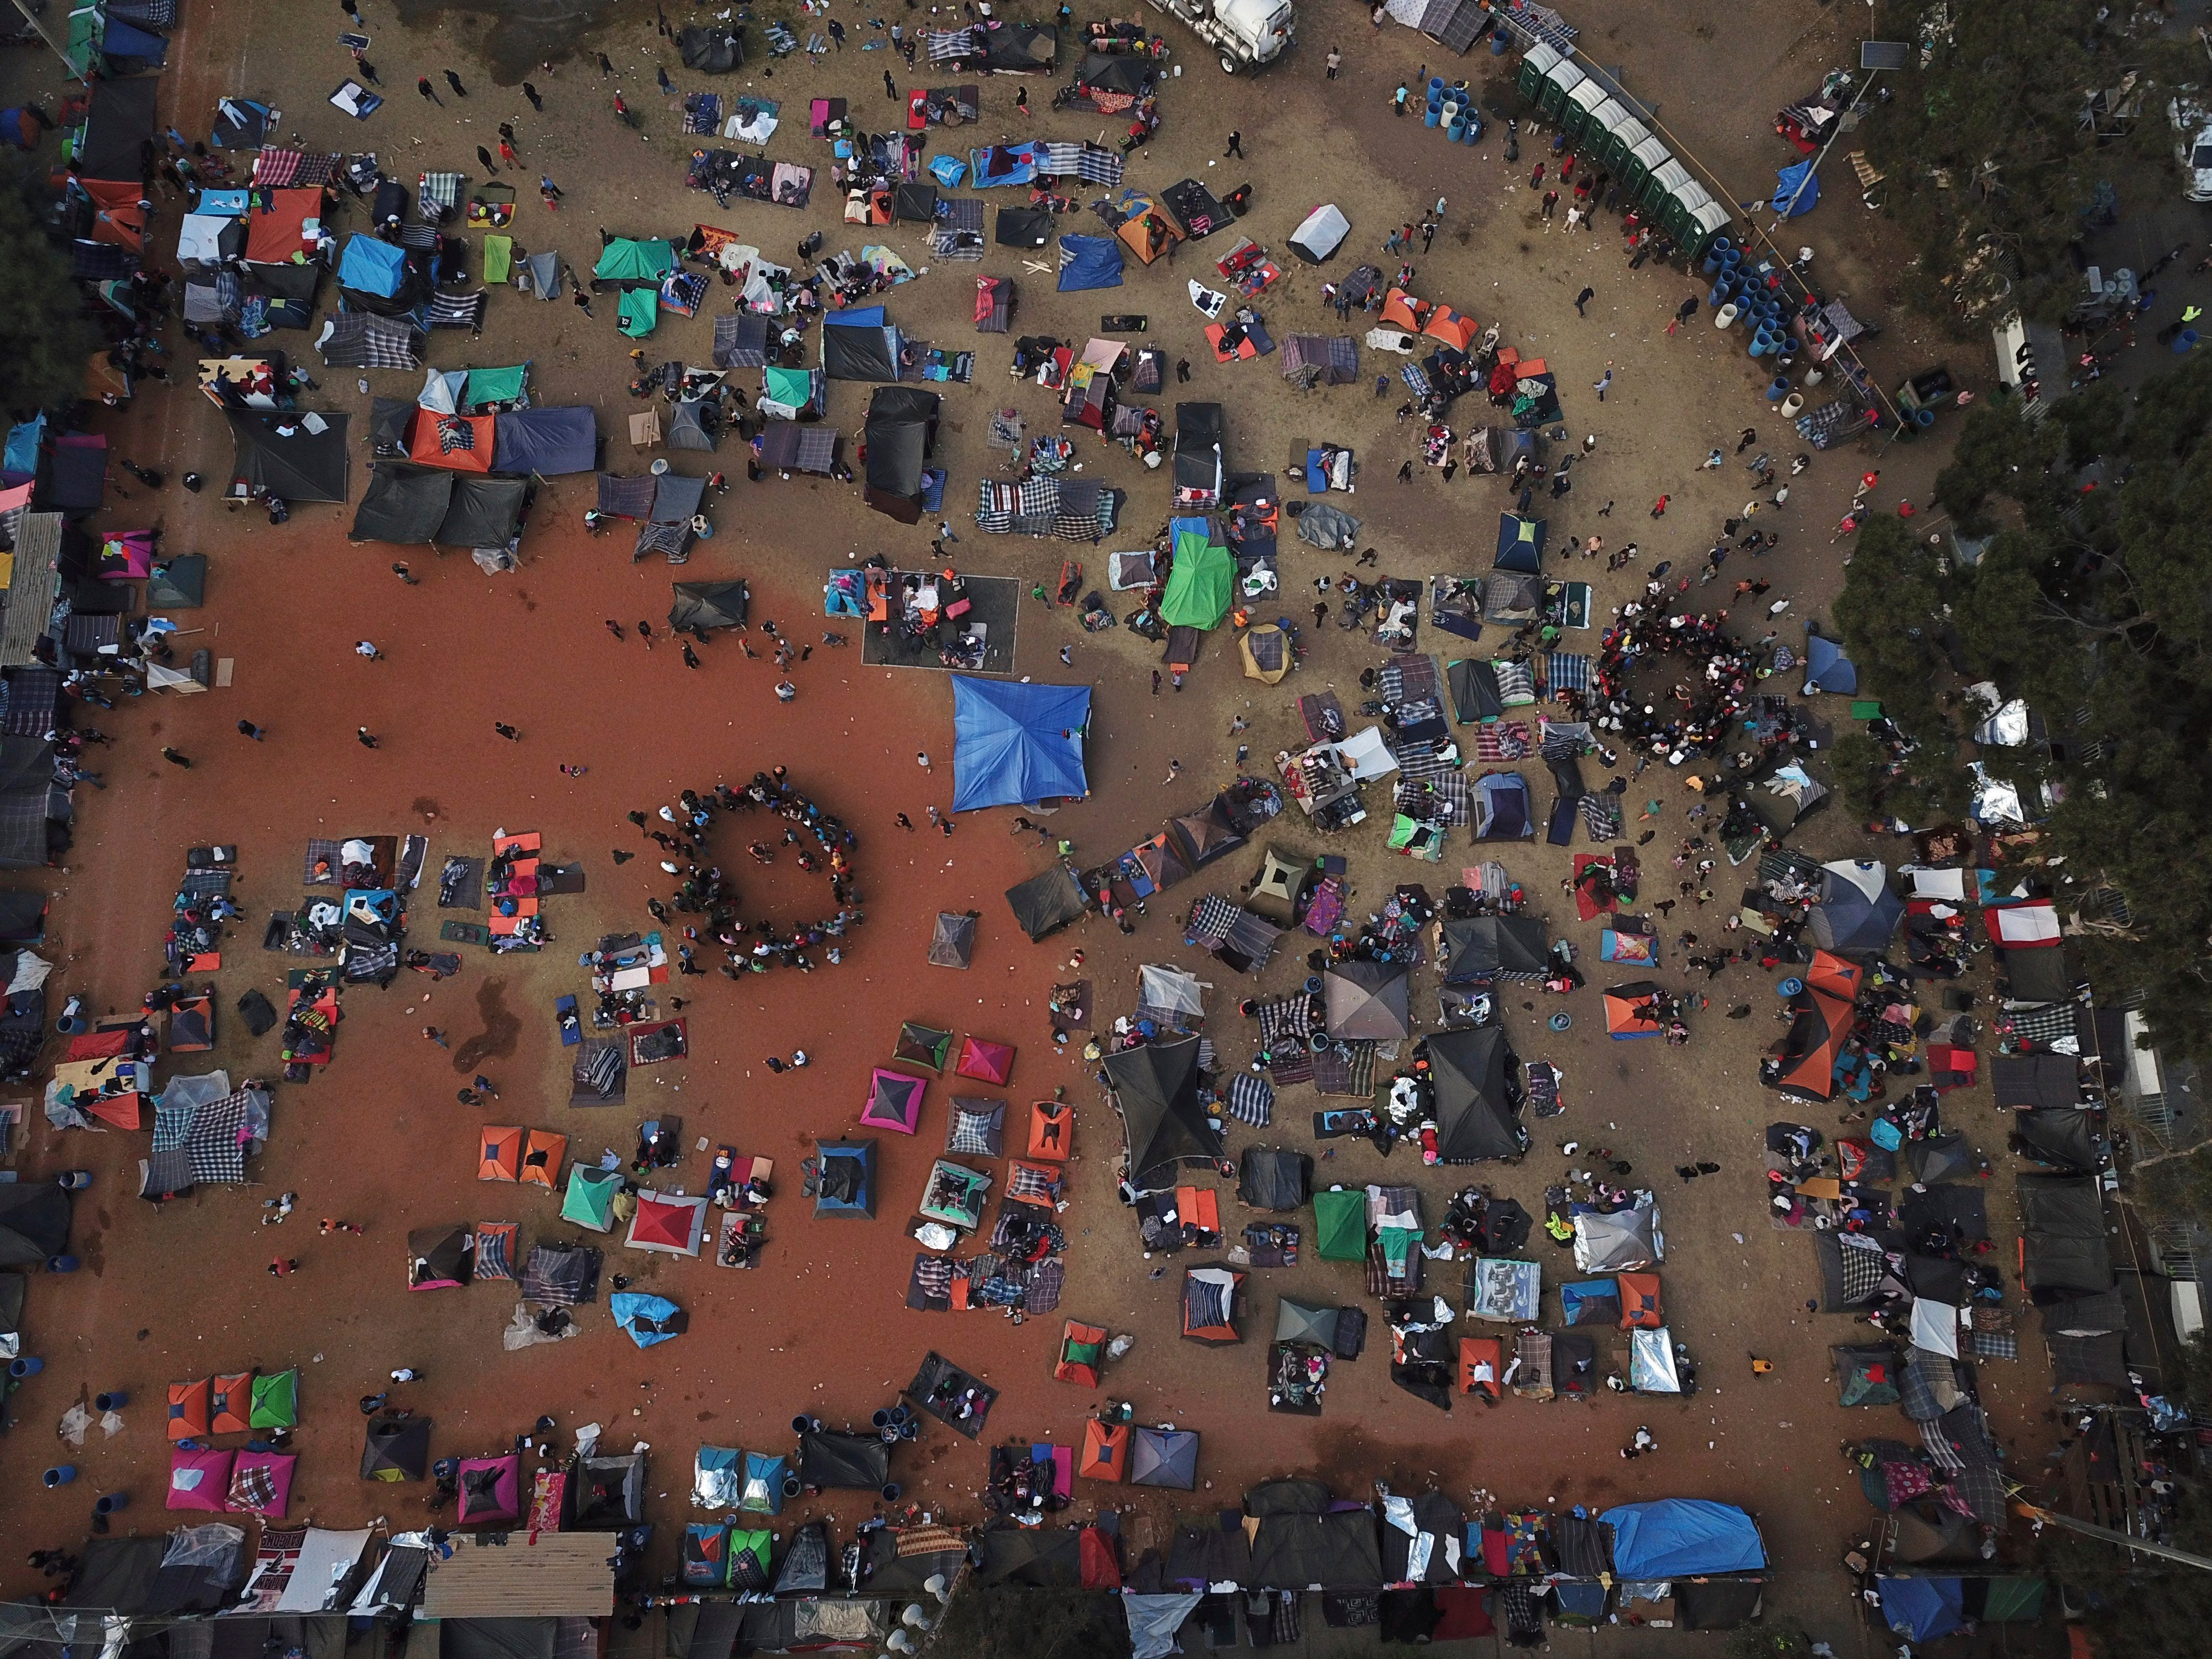 Central American migrants gather in an area designated for them to set up their tents in Tijuana, Mexico, Wednesday, Nov. 21, 2018. Migrants camped in Tijuana after traveling in a caravan to reach the U.S are weighing their options after a U.S. court blocked President Donald Trump's asylum ban for illegal border crossers.